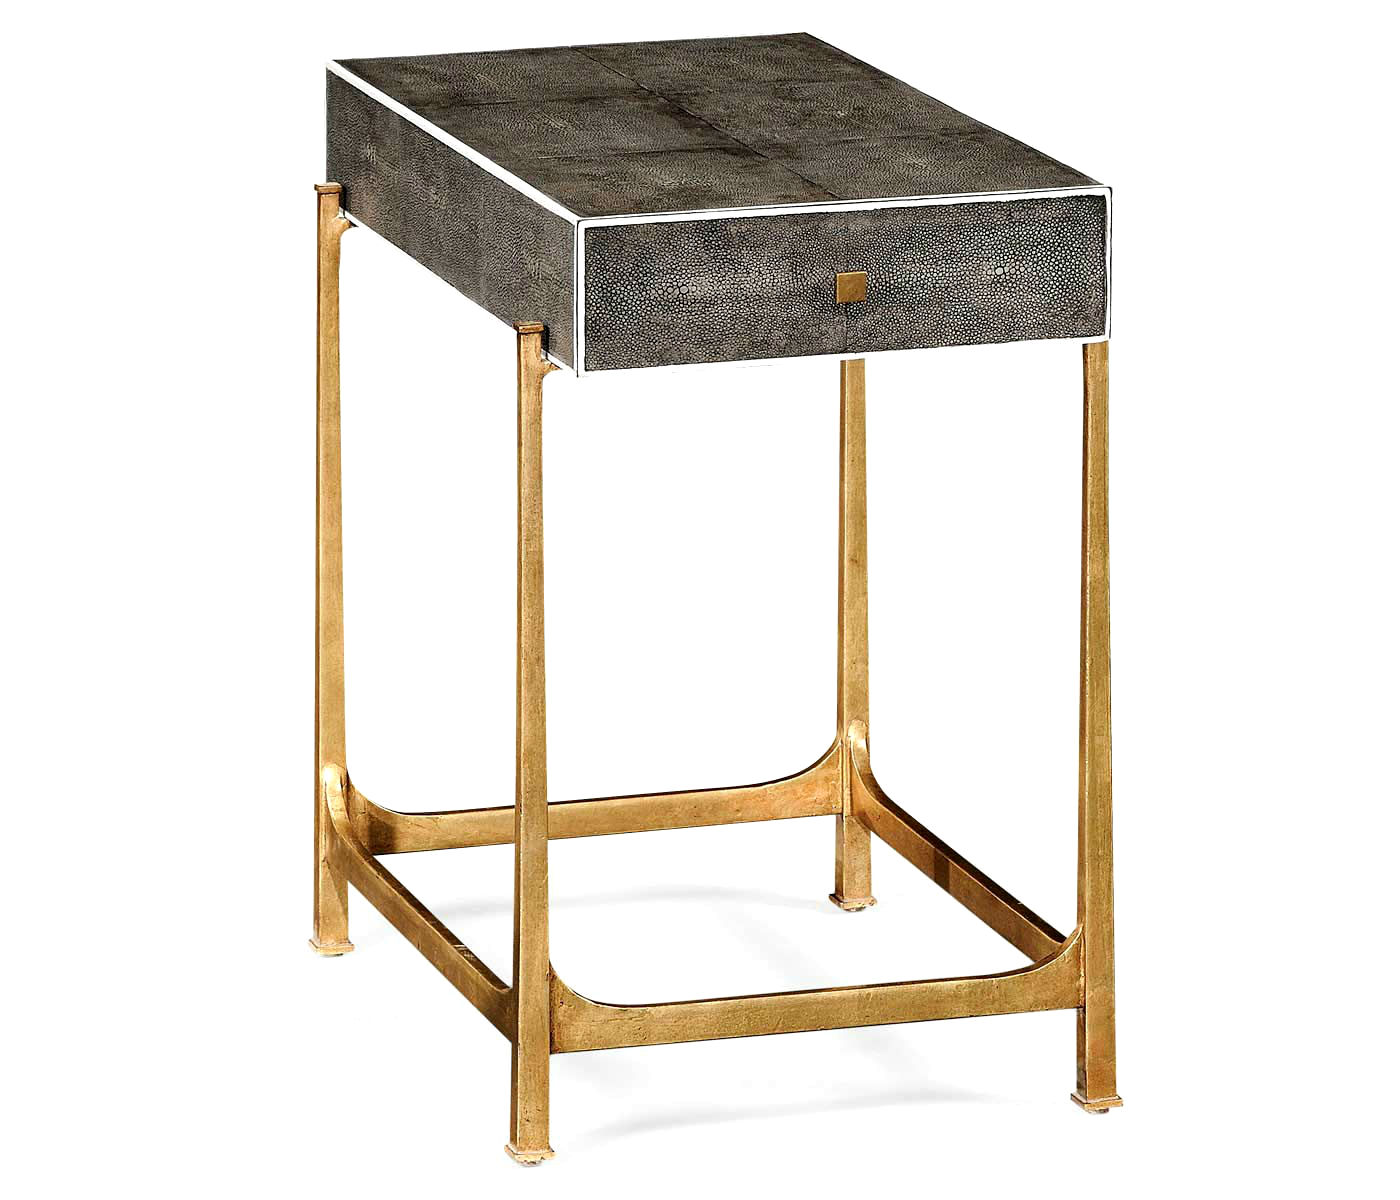 shagreen side table end accent tables black metal and wood tall art deco iron gold gilded partner coffee console available hospitality residential friday asian white for living